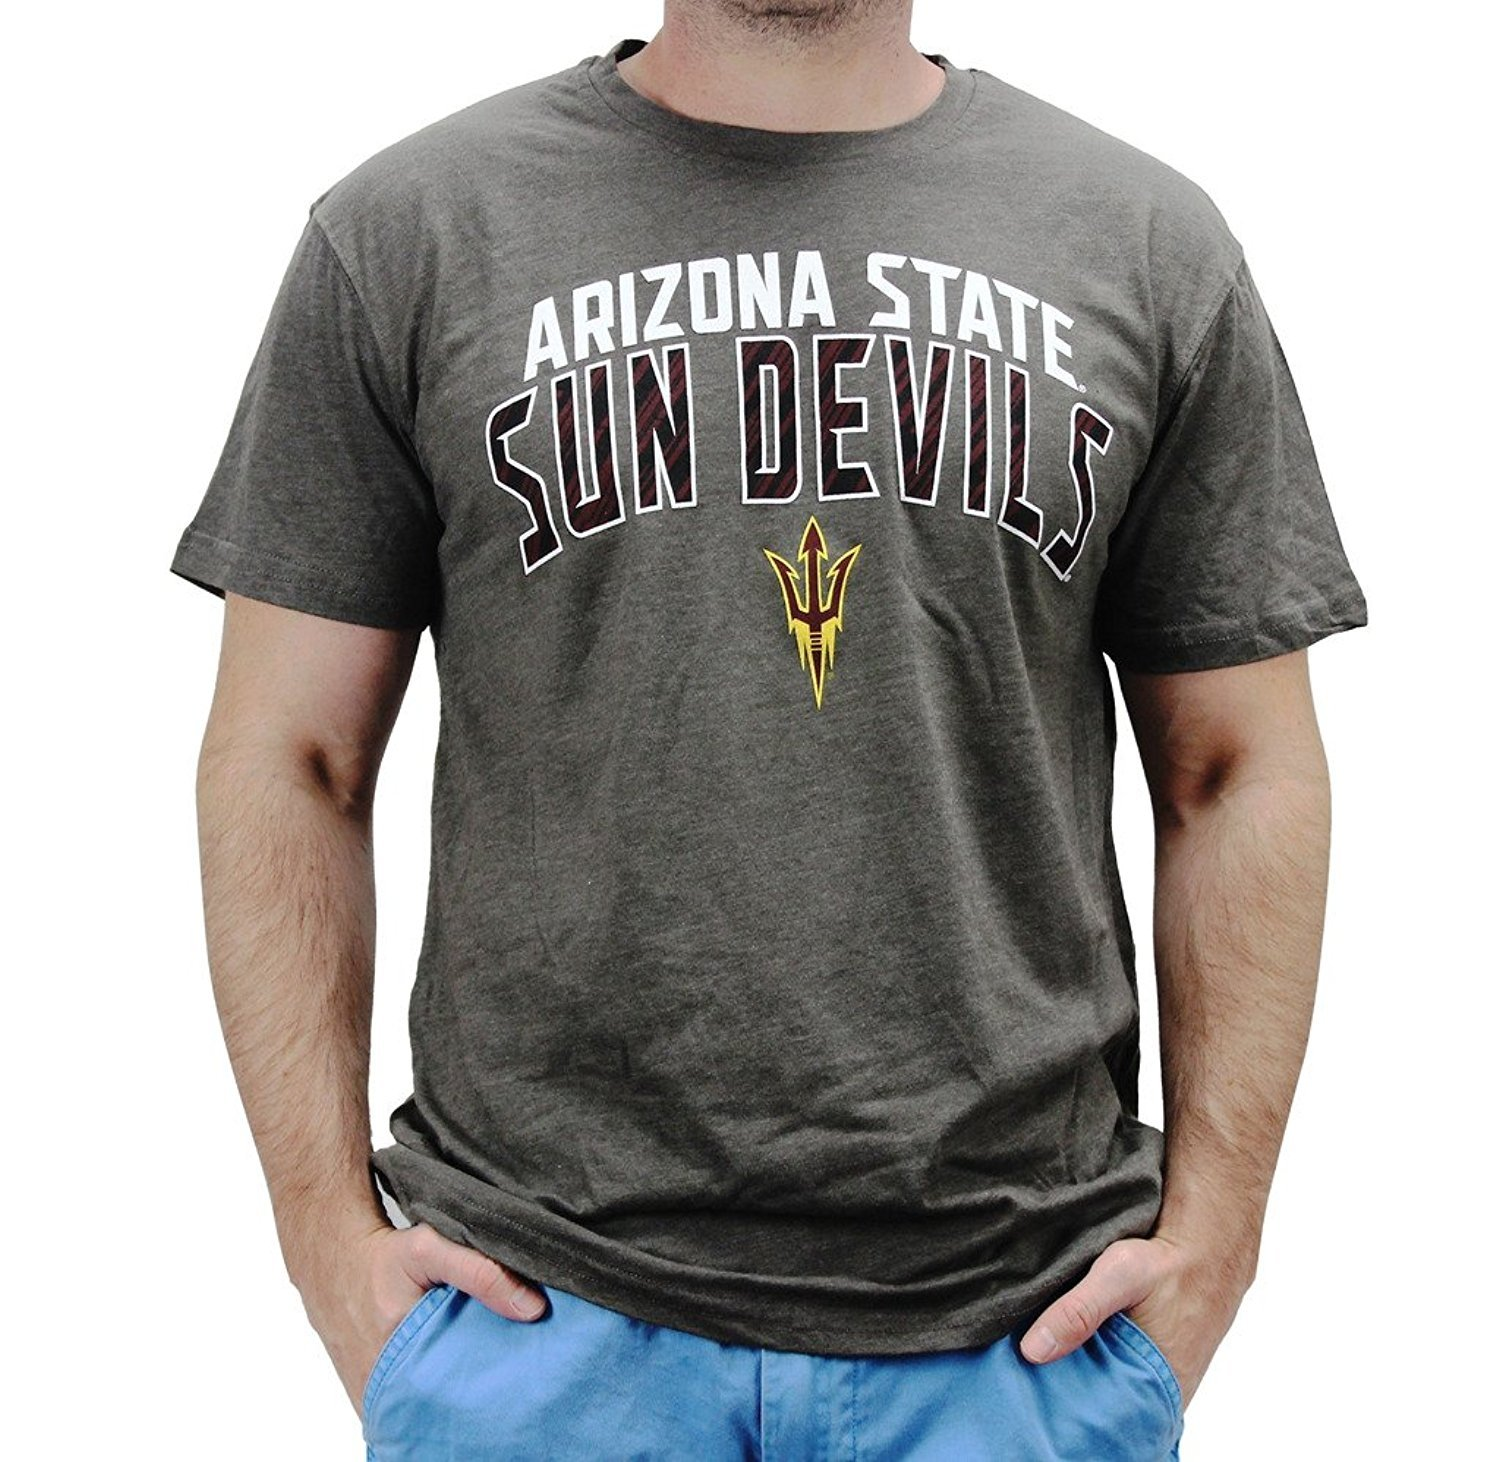 4th and 1 Men's Arizona State Sun Devils T Shirt Grey